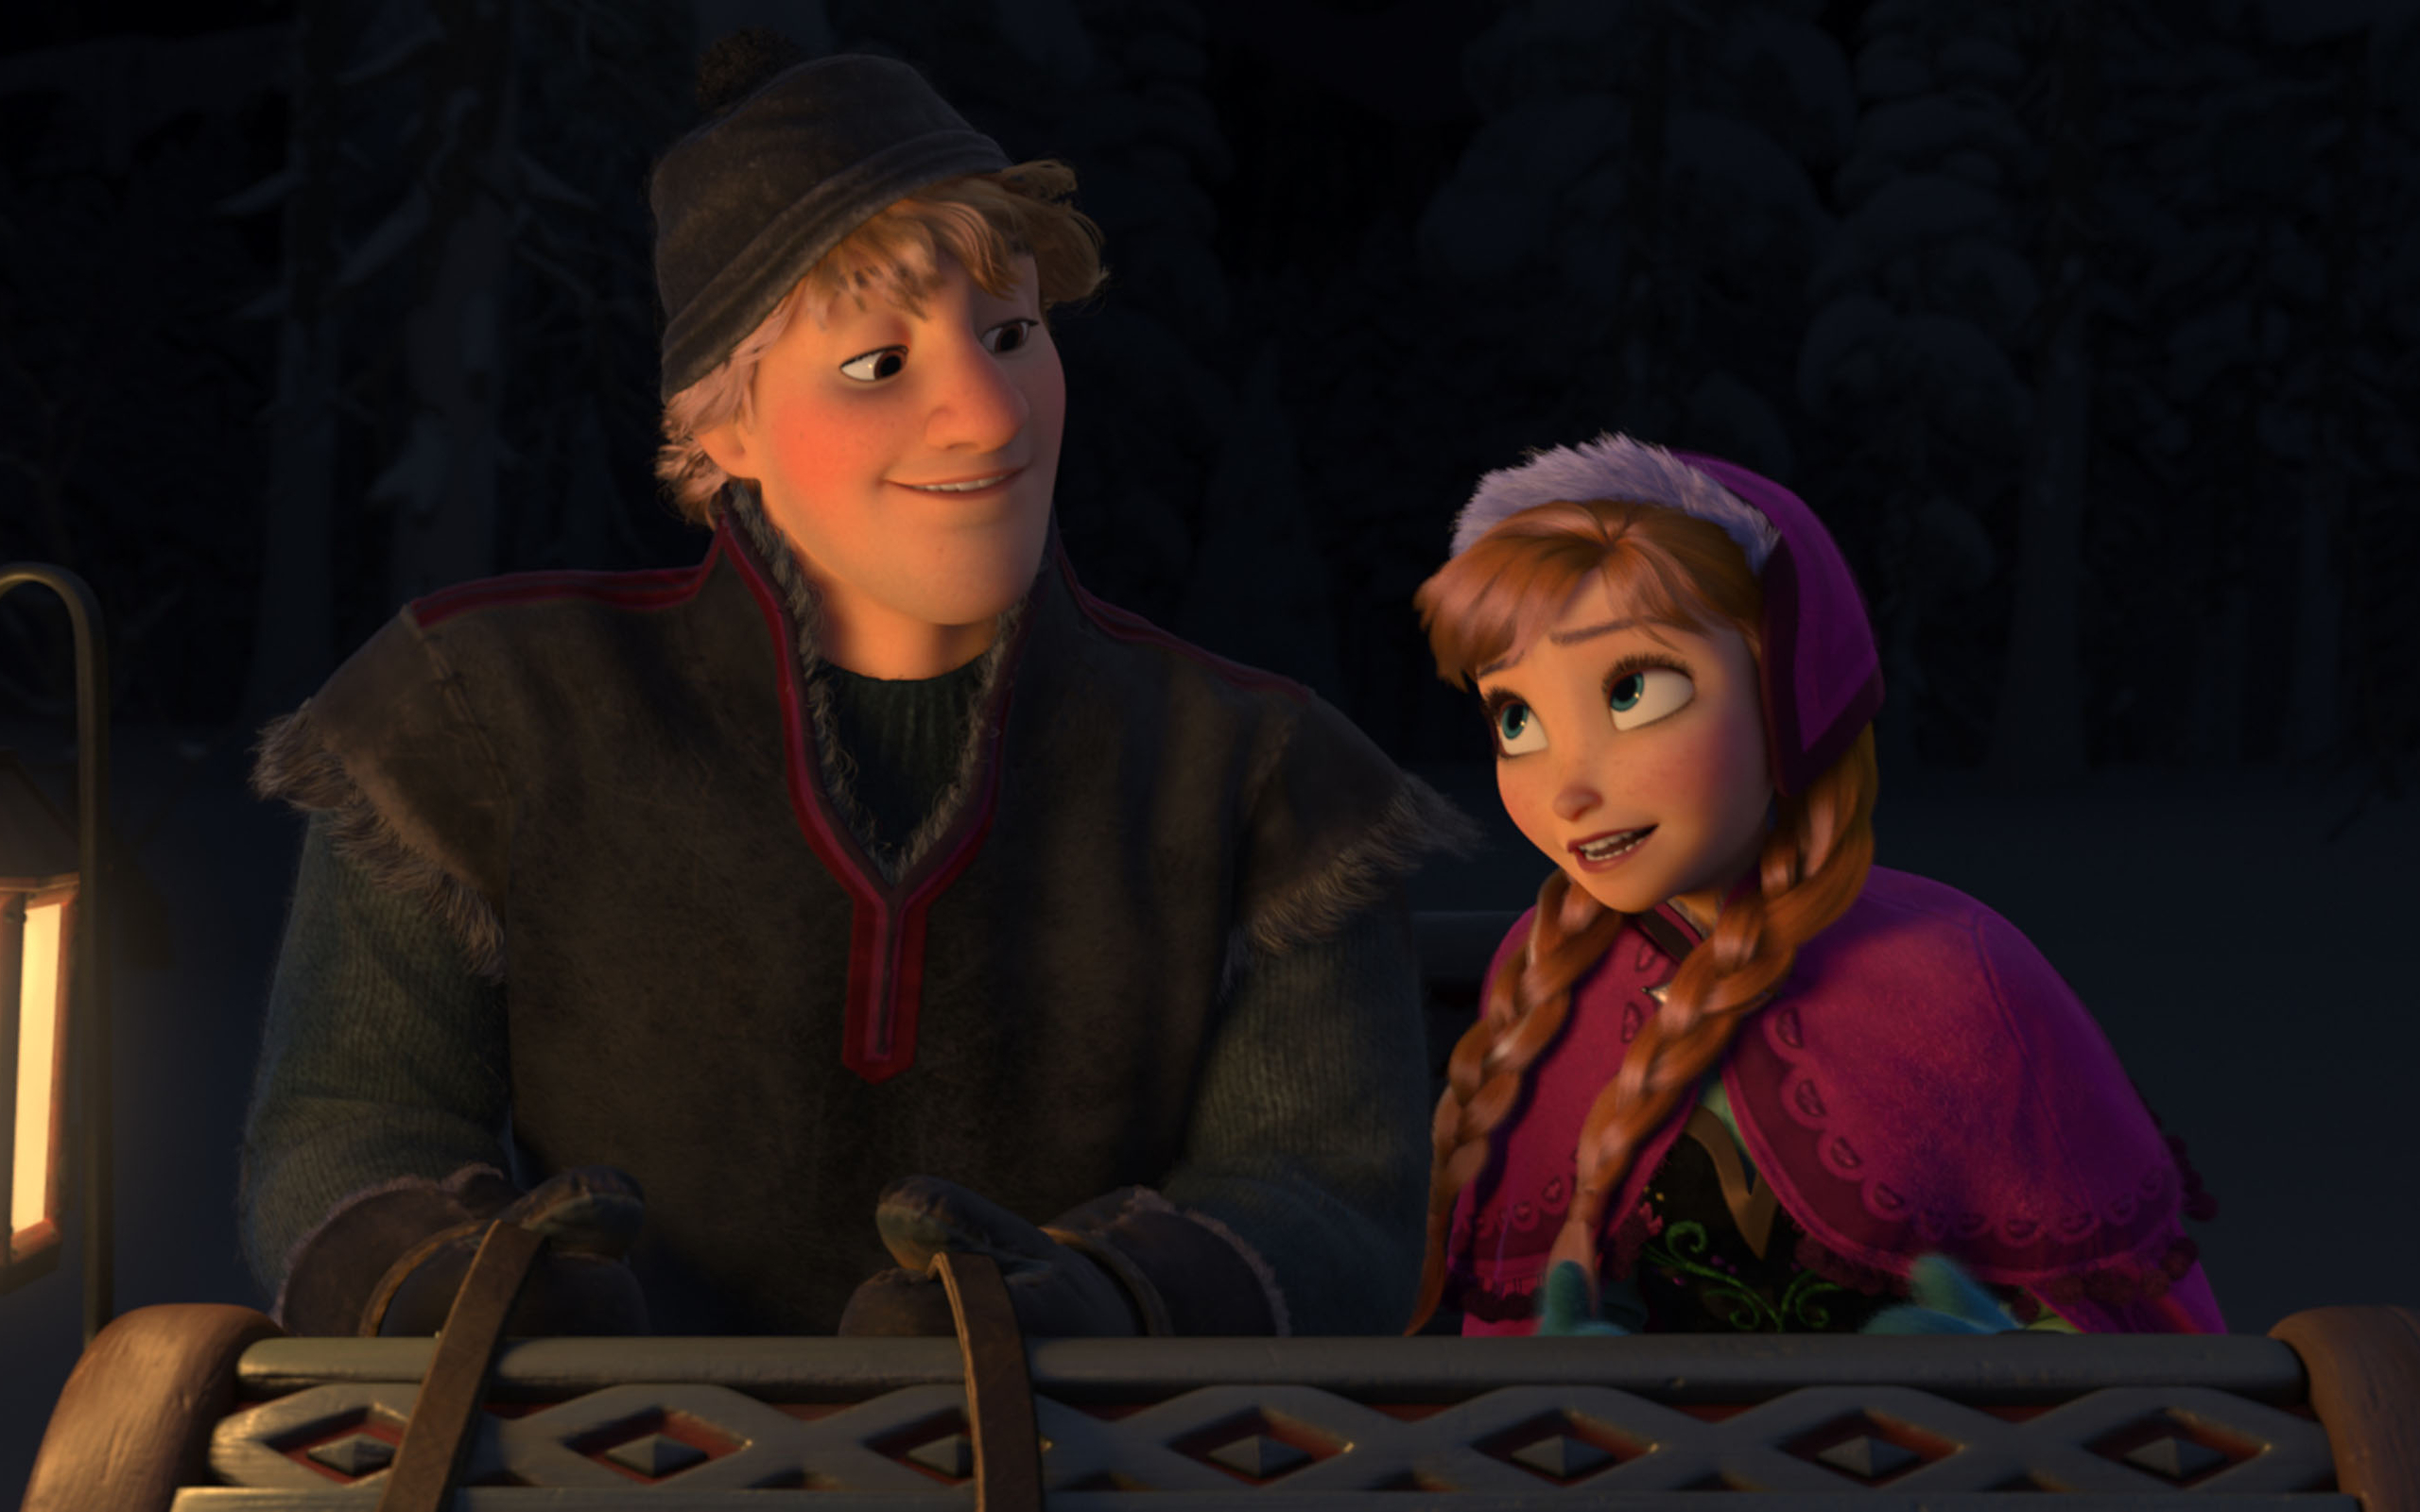 frozen full hd wallpaper and background image   2560x1600   id:491329